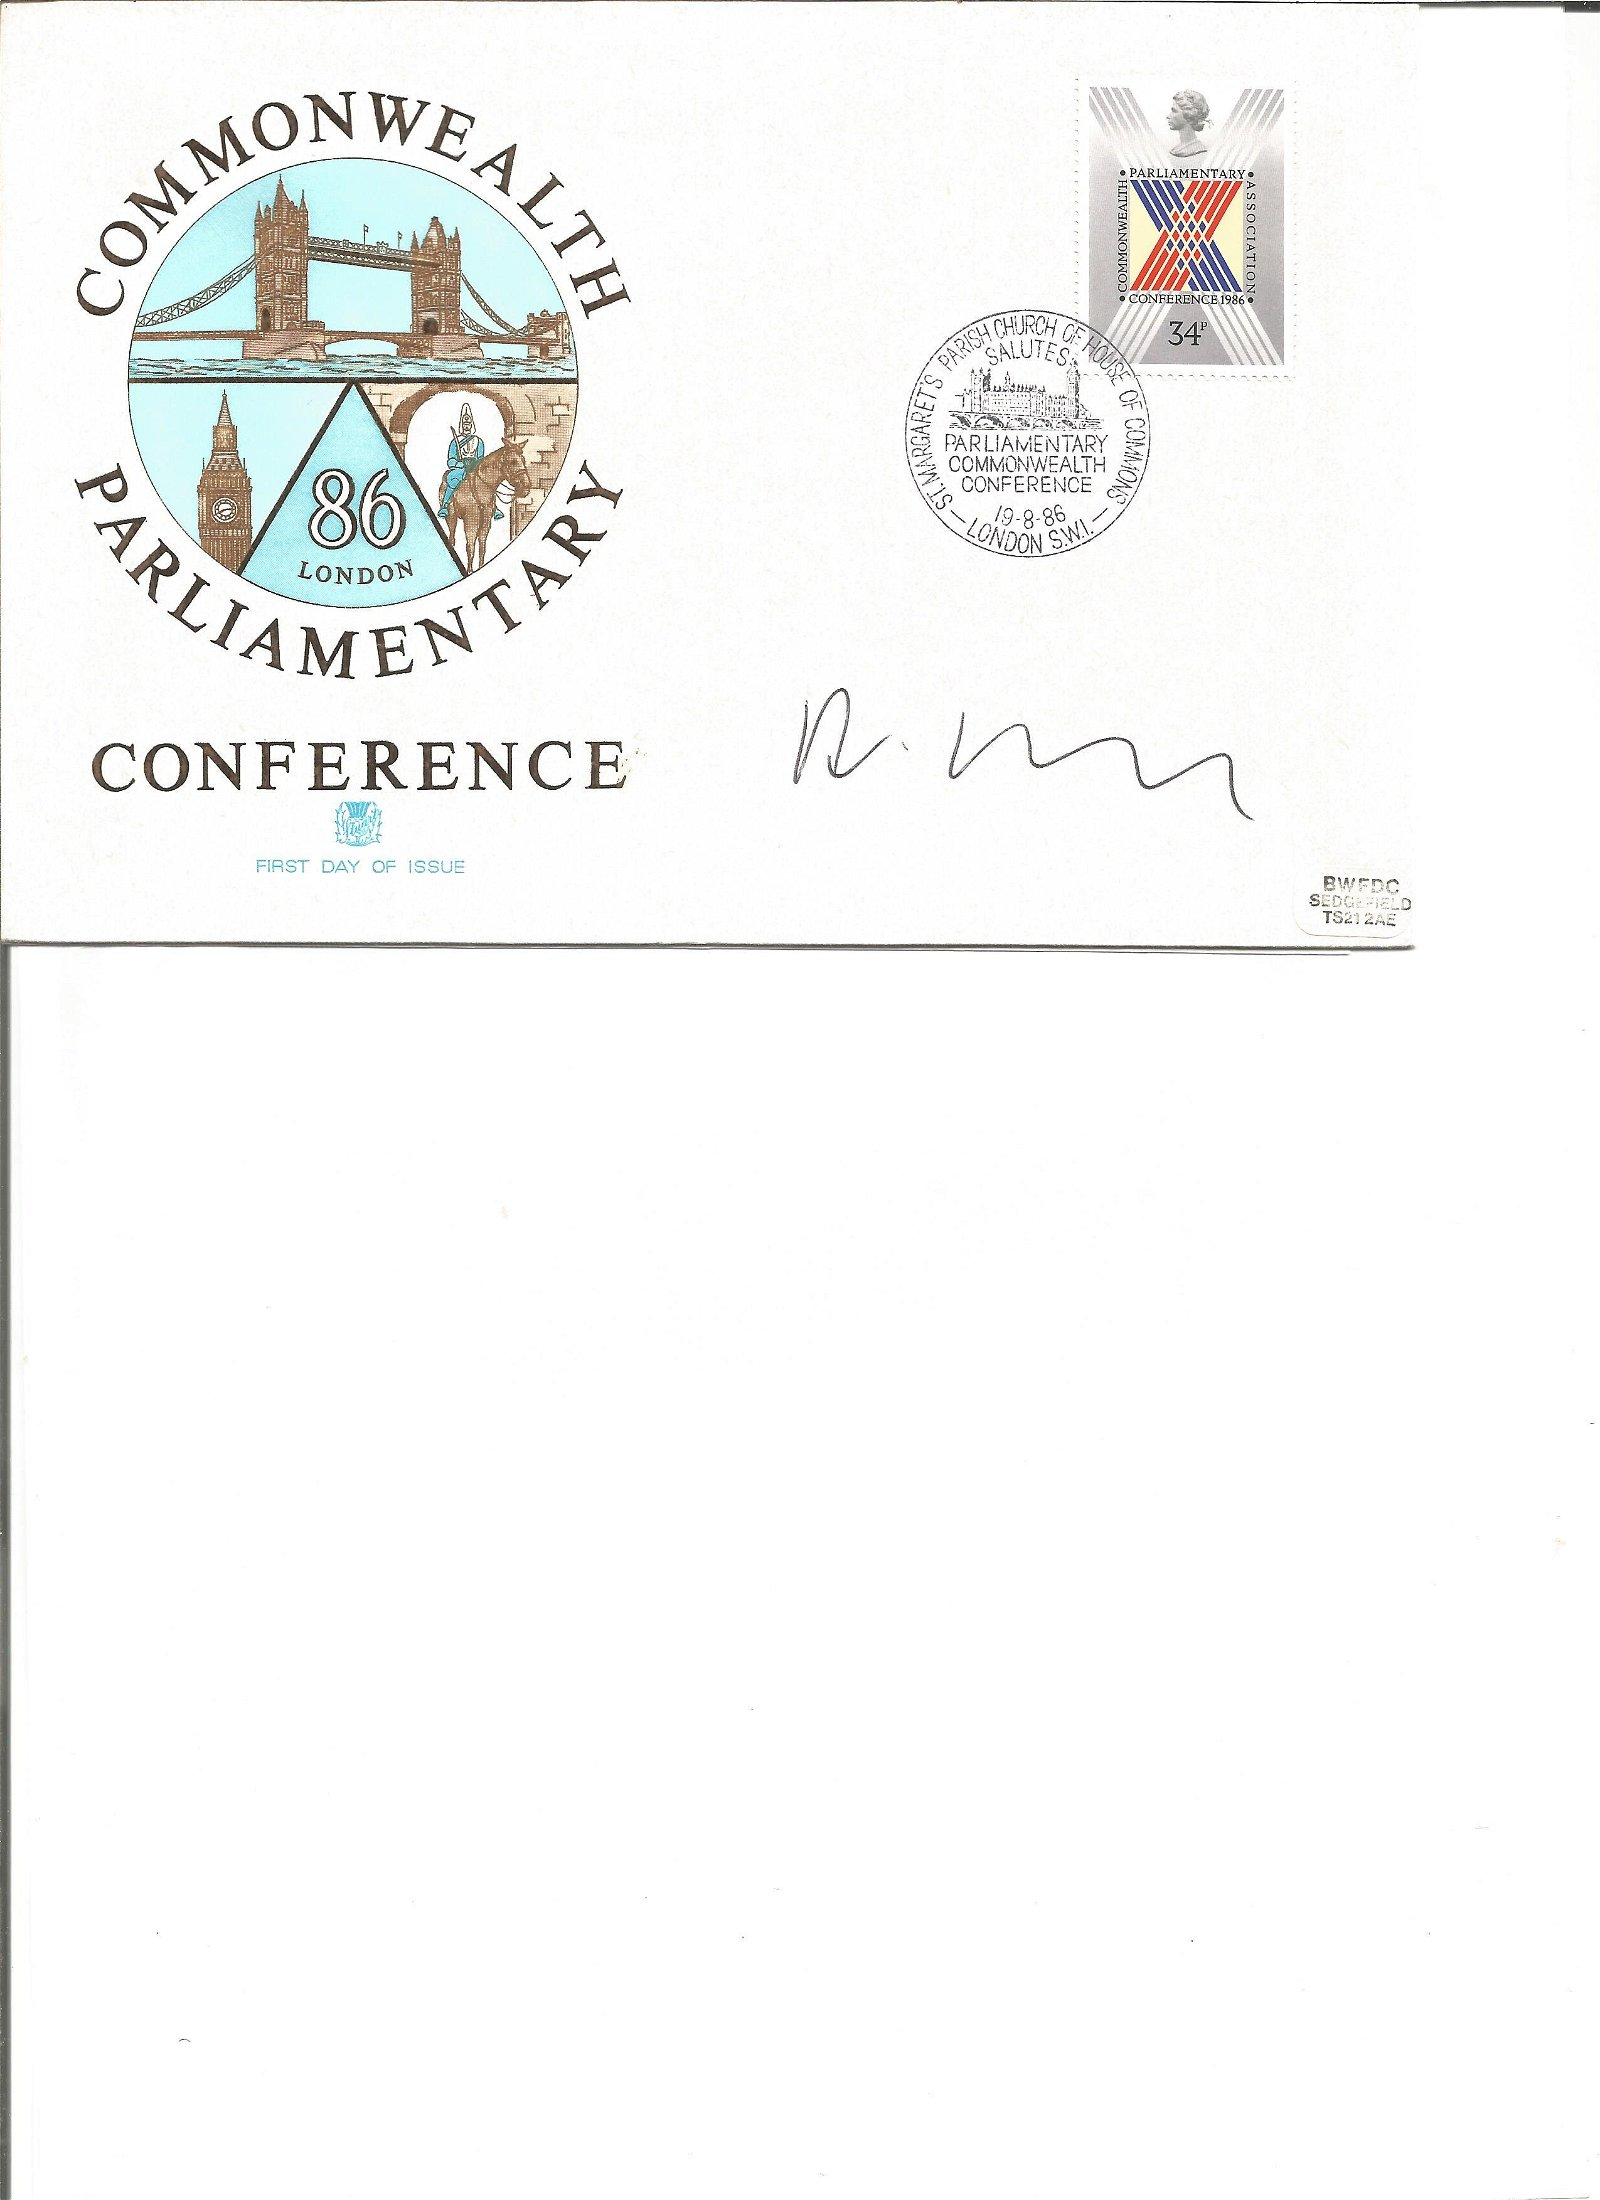 Commonwealth Parliamentary Conference cover signed by